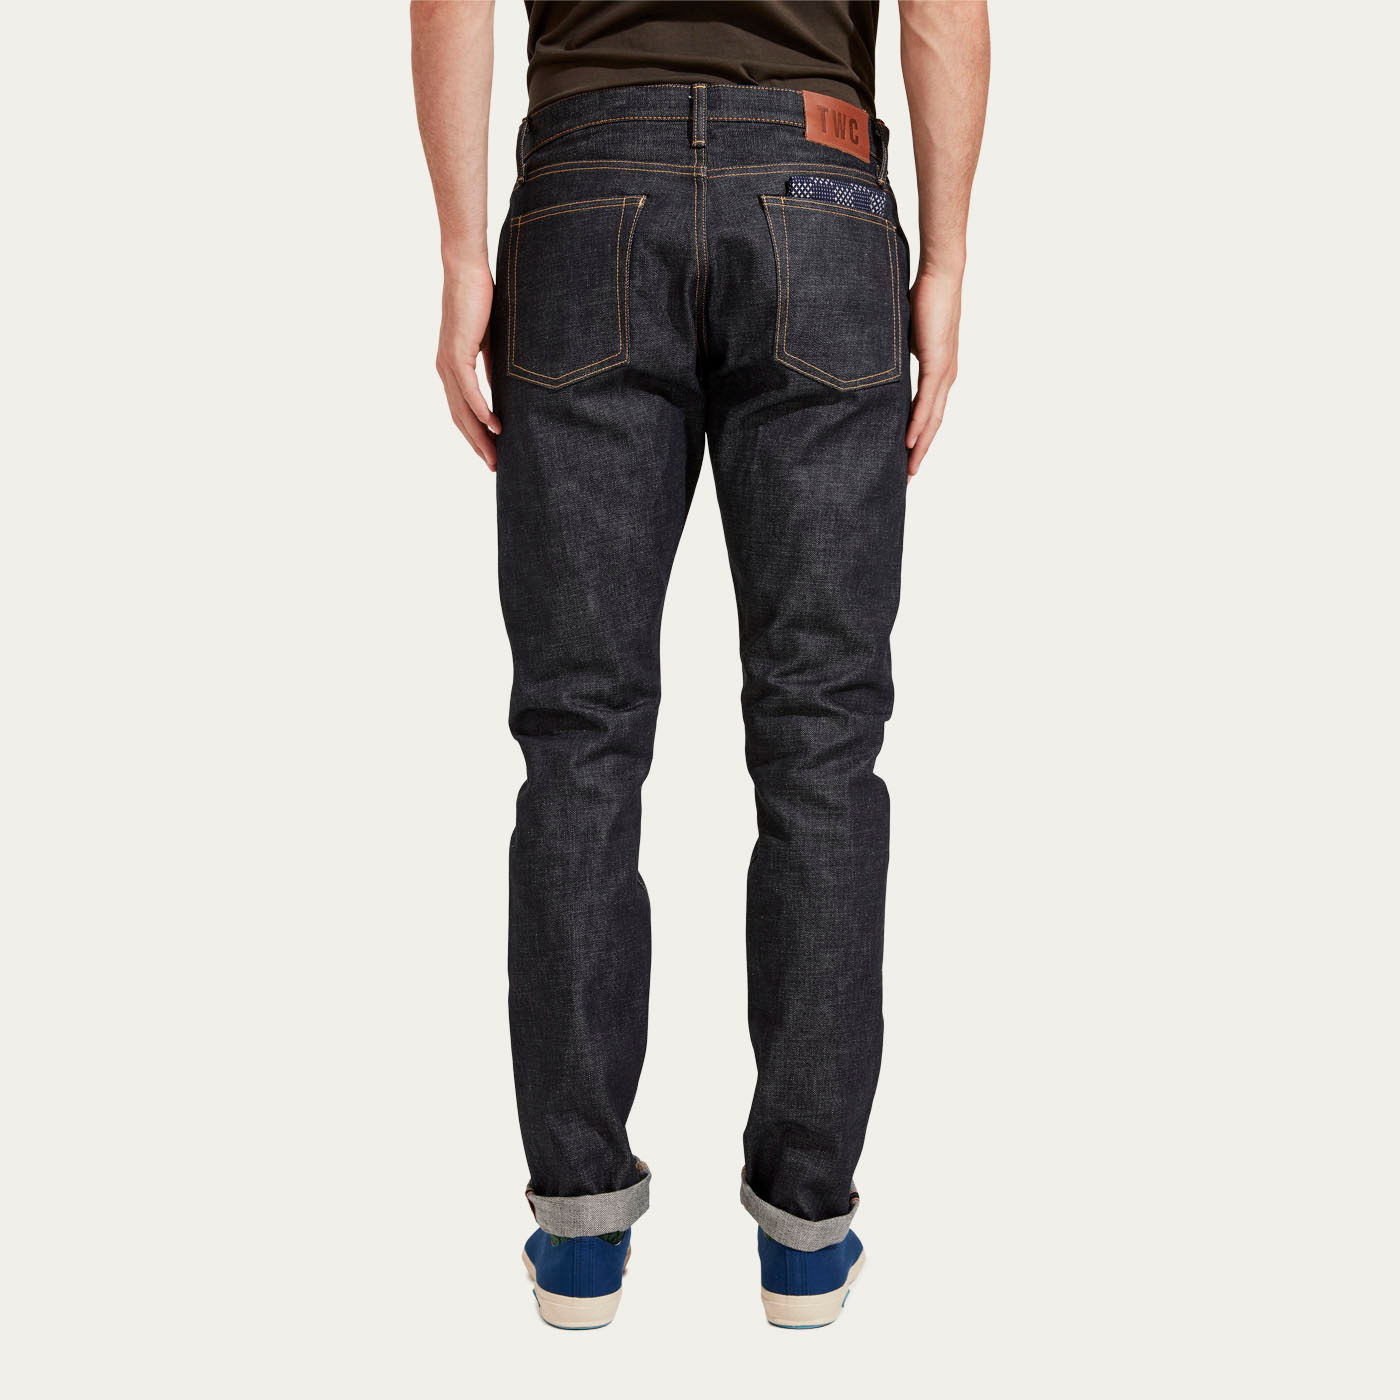 Rigid Denim Japanese Selvedge Jeans | Bombinate